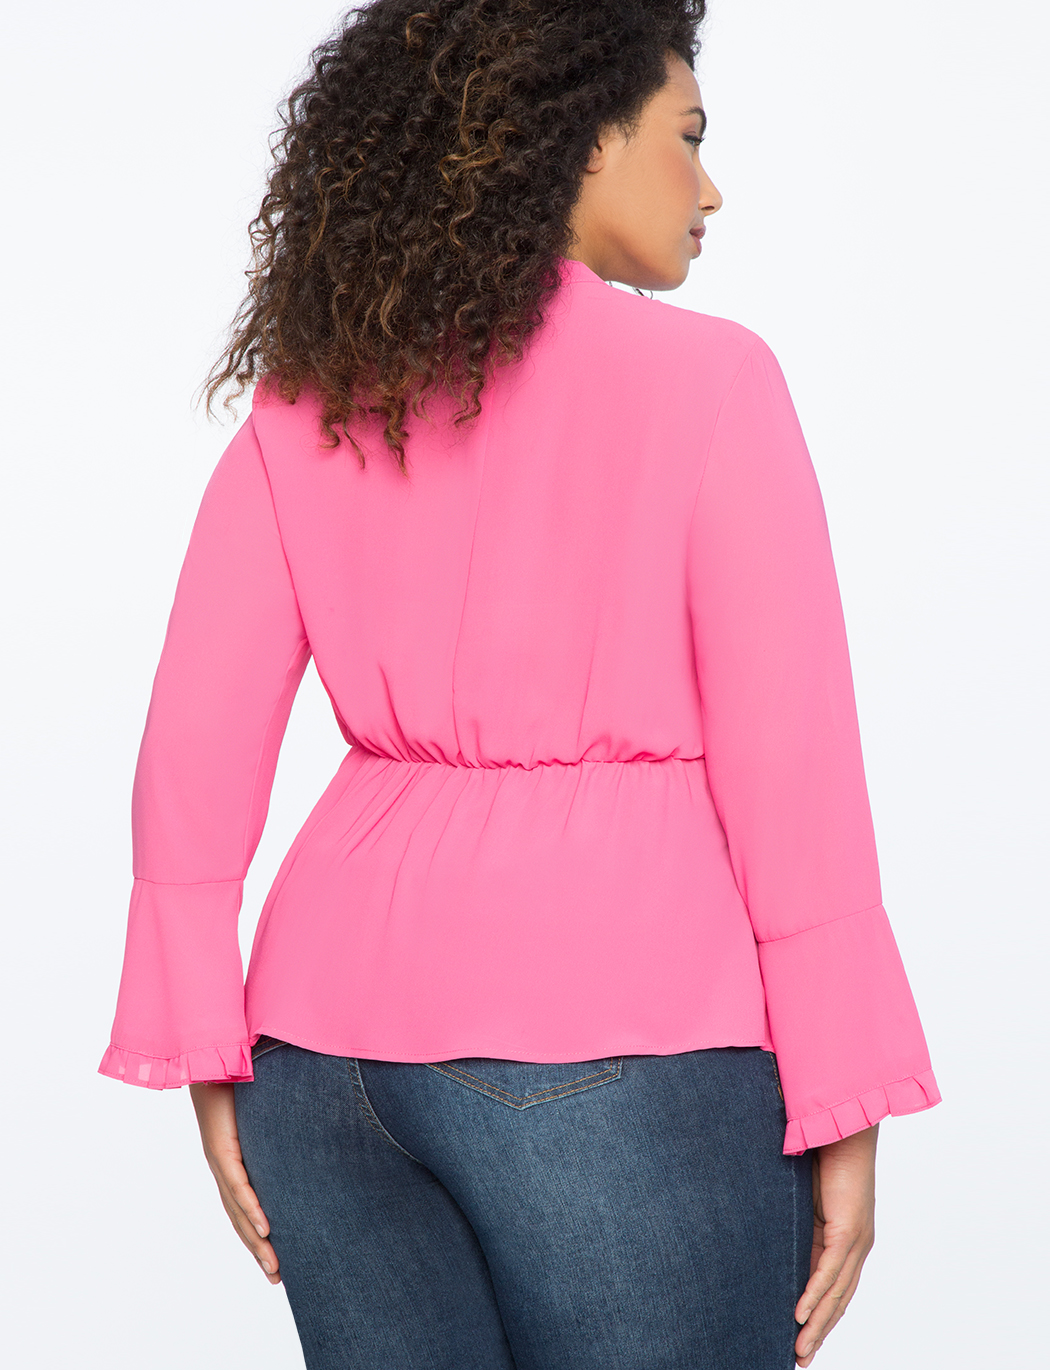 Peplum Bow Blouse with Pleat Detail